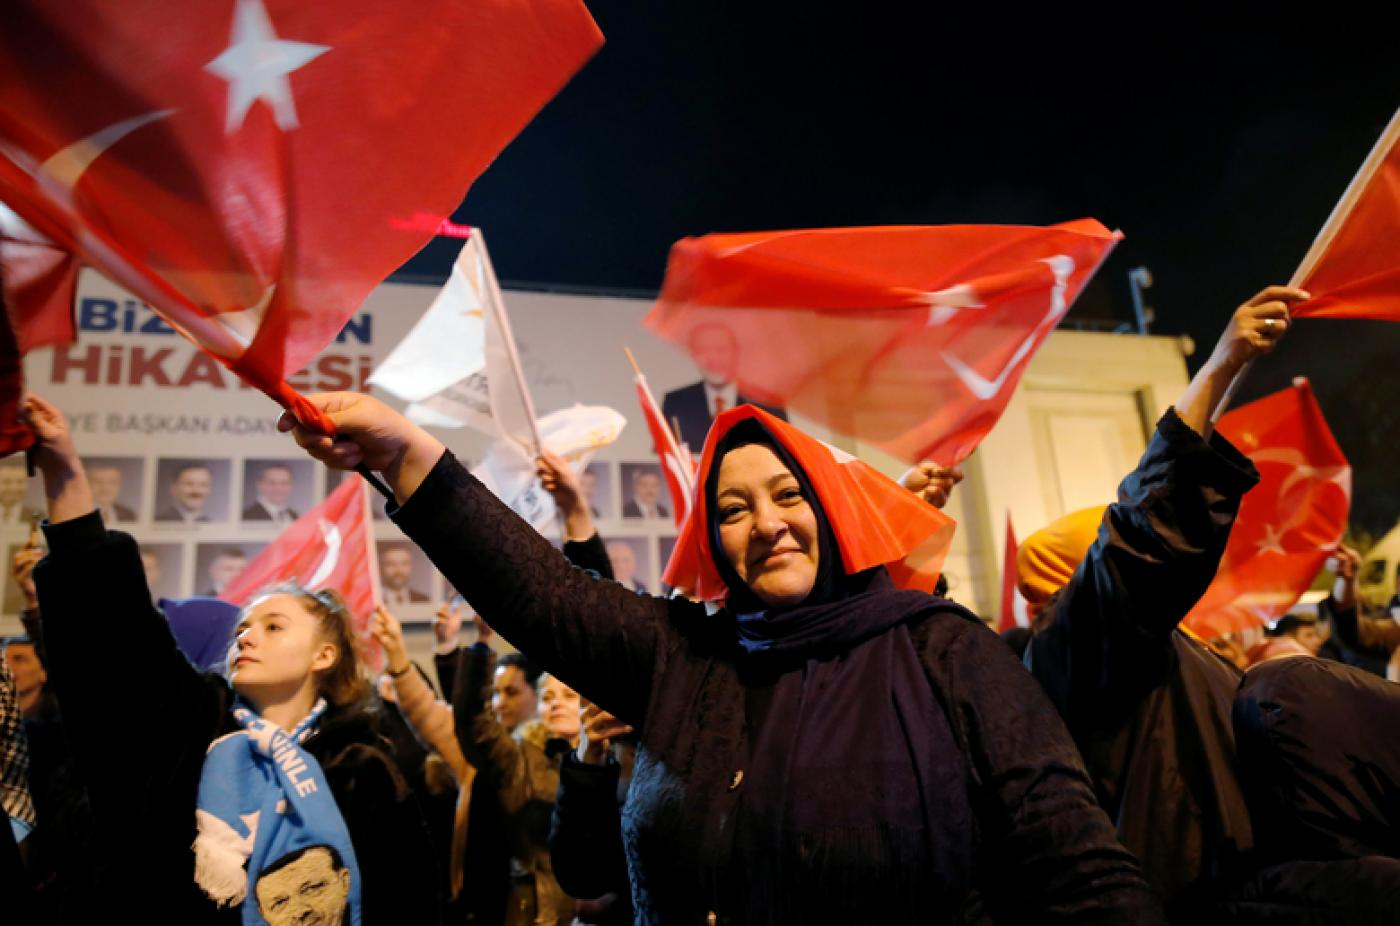 Erdogan's party loses key elections in Turkey vote